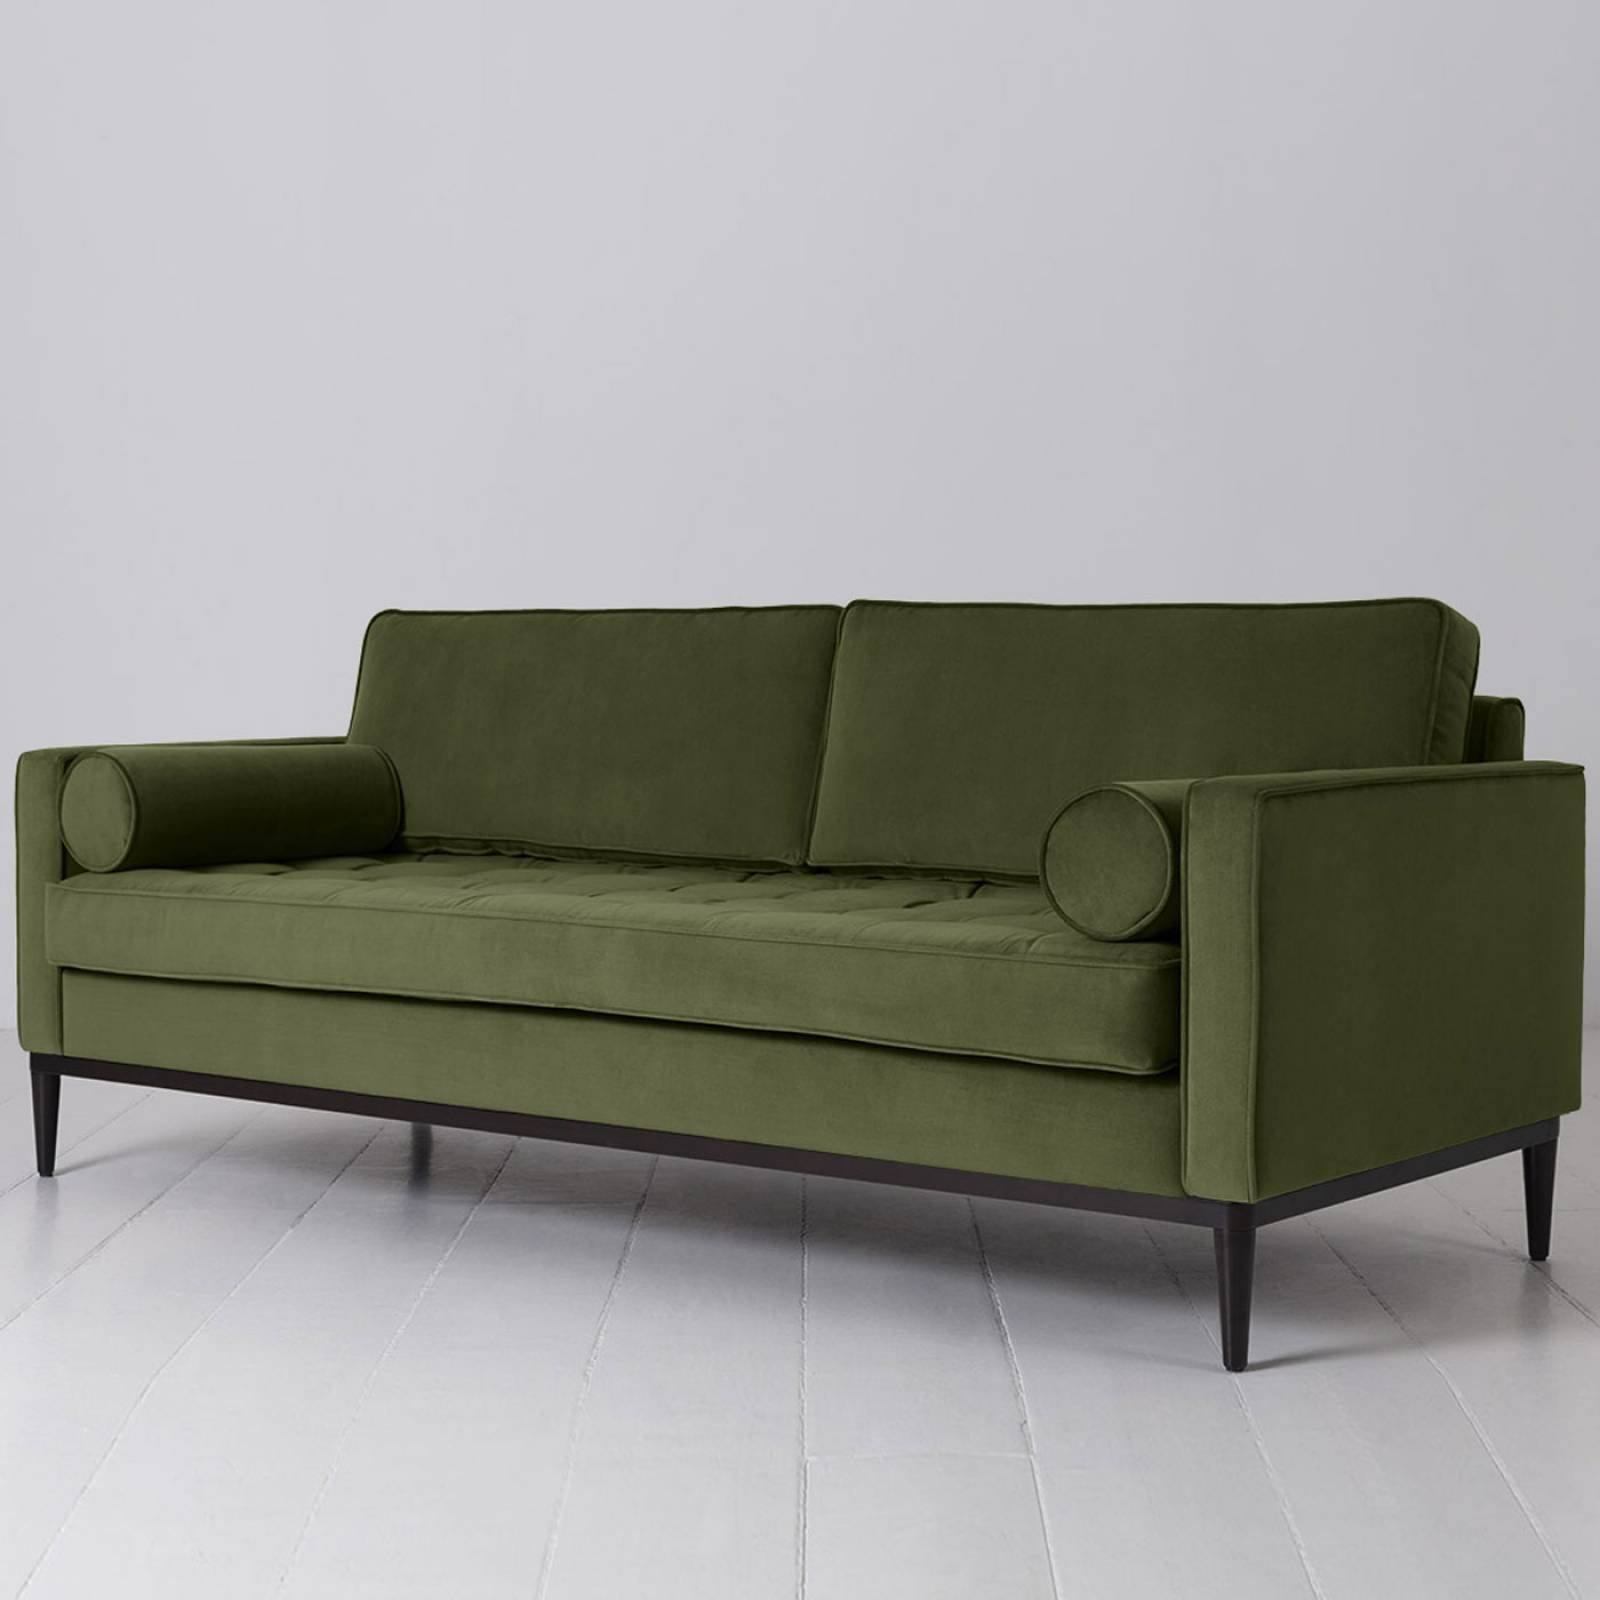 Swyft - Model 02 Velvet 3 Seater Sofa - Vine thumbnails